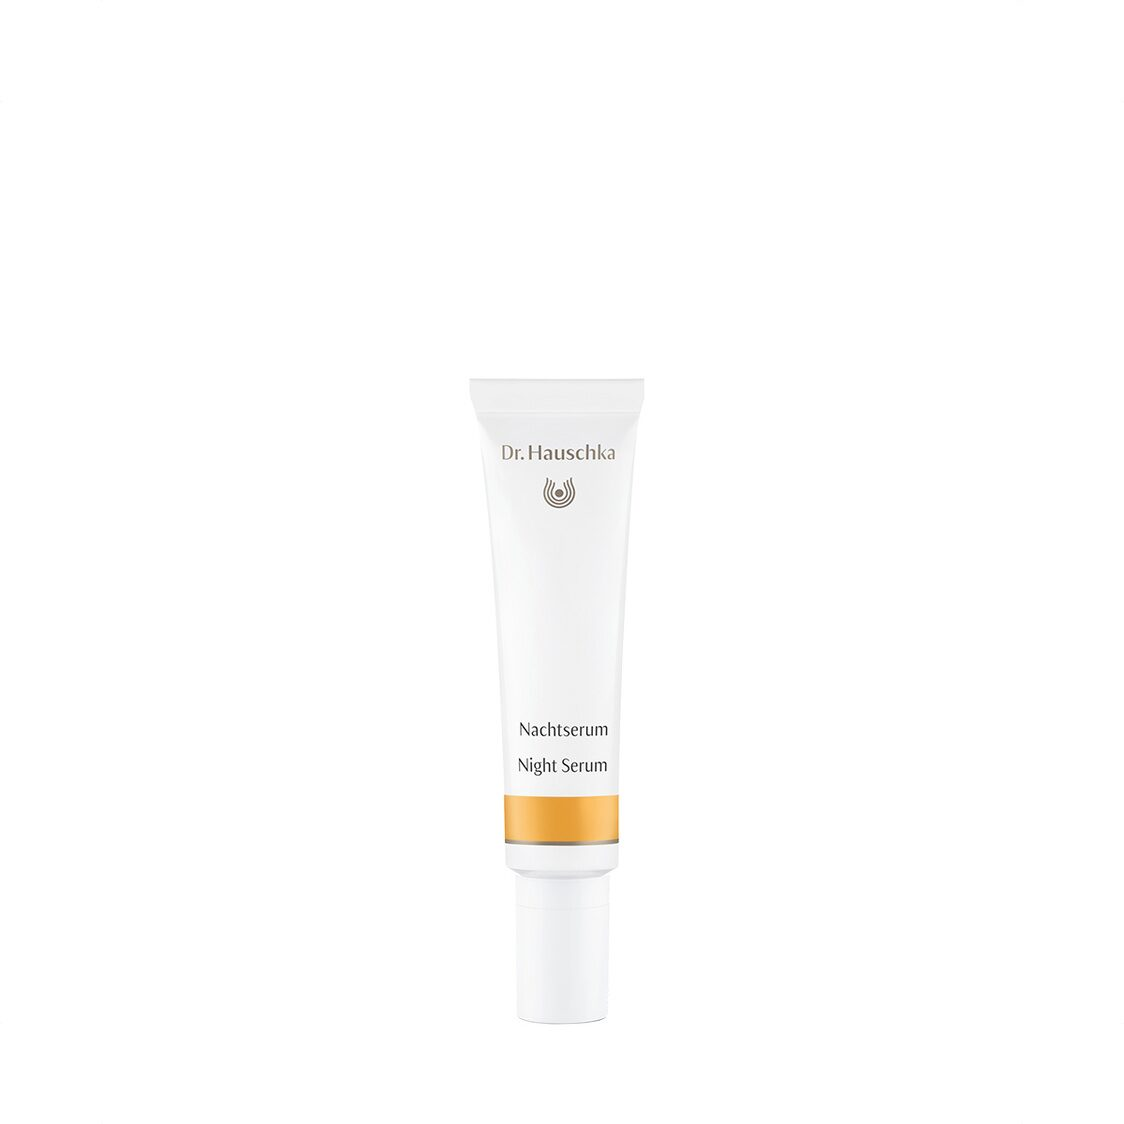 DrHauschka Night Serum 20ml